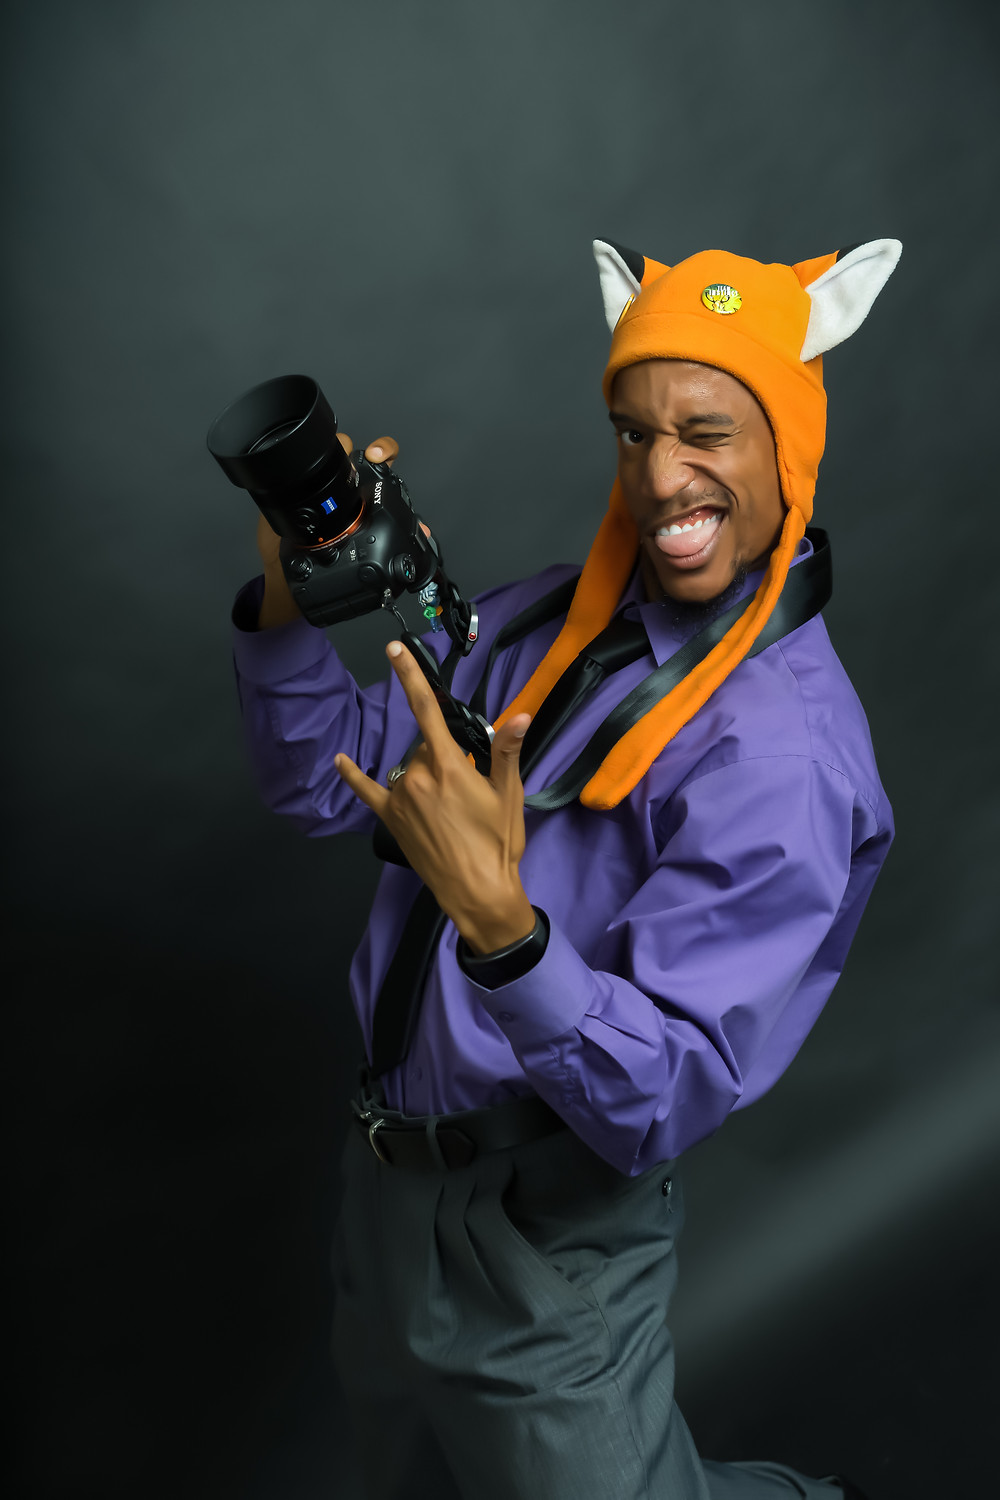 Darkfox Photography posing with a camera with his tongue sticking out and a rocker pose